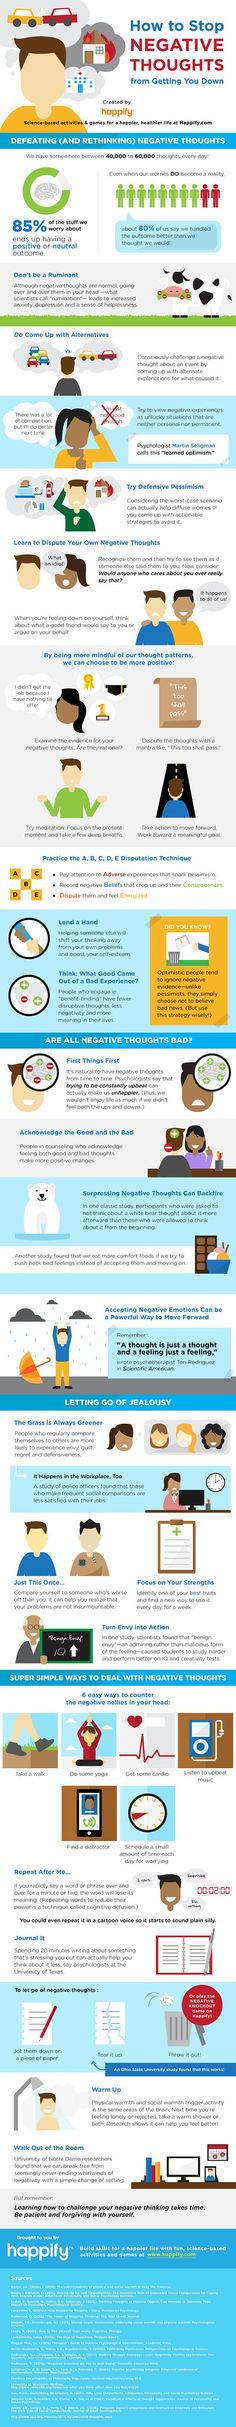 This Infographic Teaches You to How to Stop Negative Thoughts